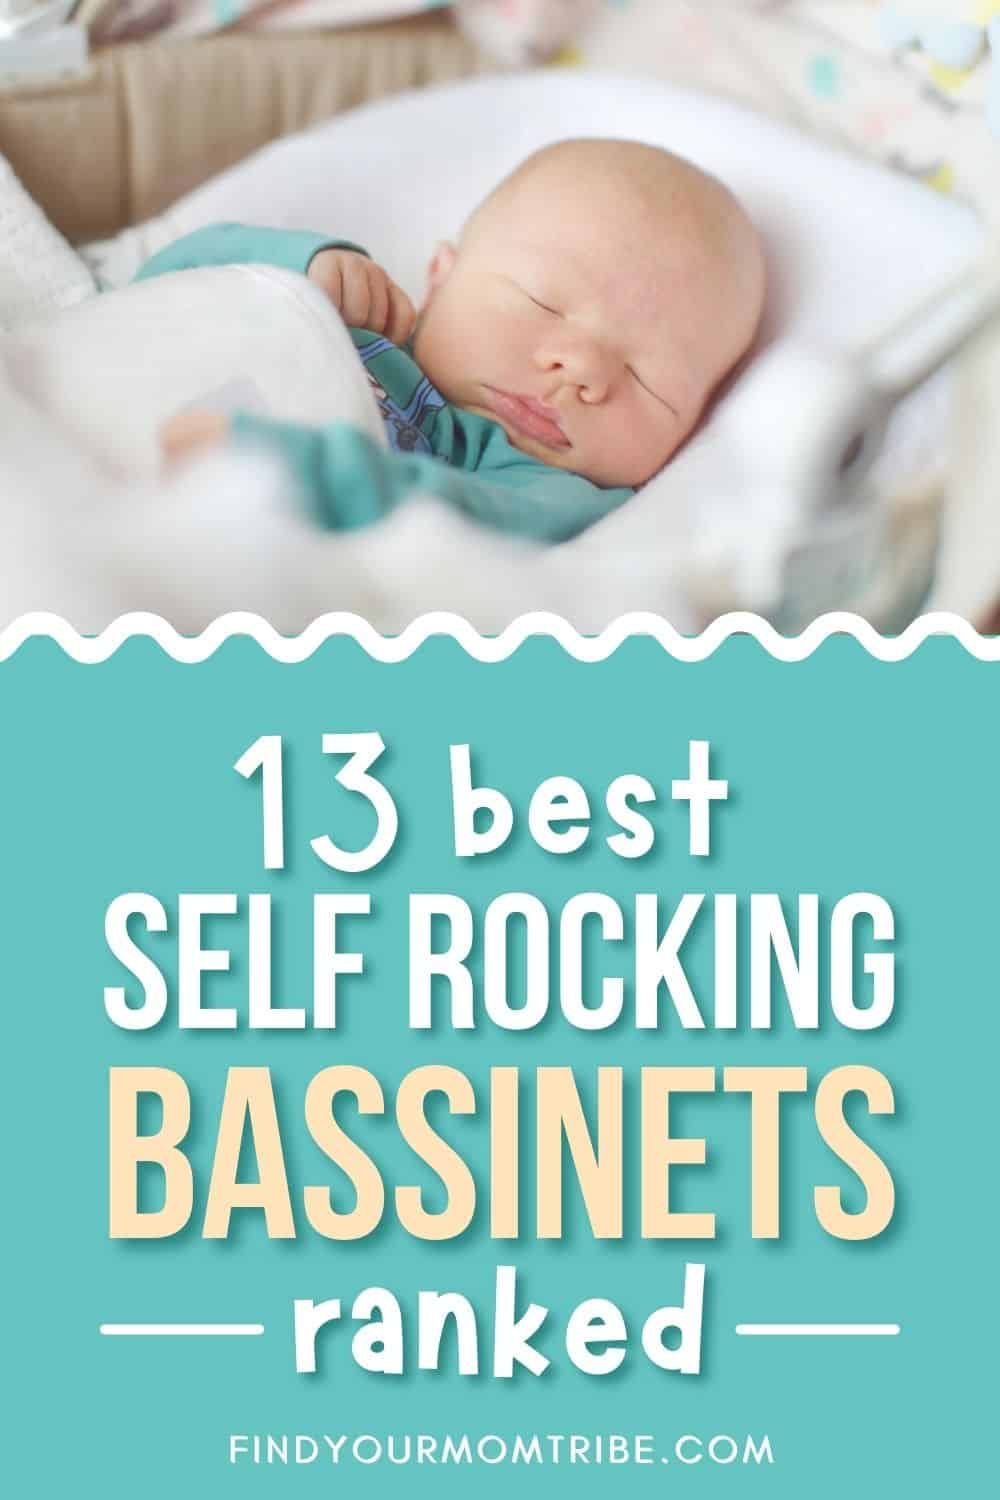 13 Best Self Rocking Bassinets In 2021 Ranked (Reviews) Pinterest